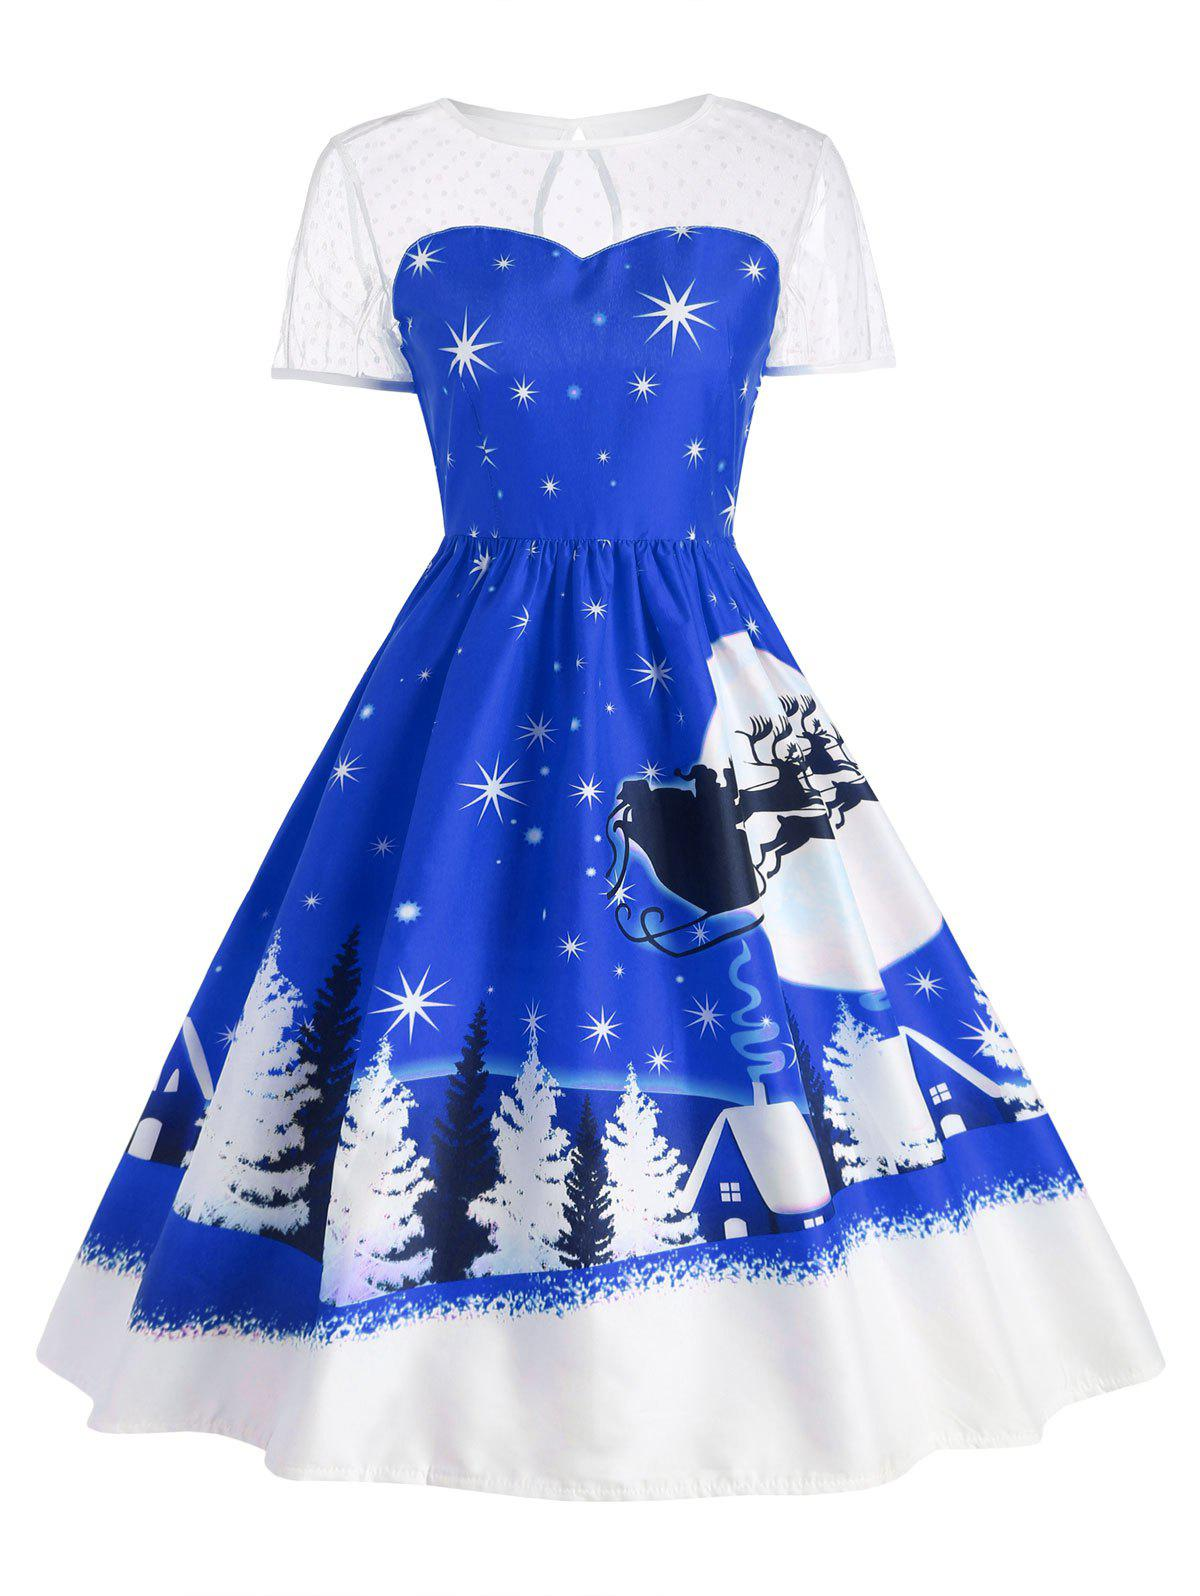 Santa Claus Deer Vintage Christmas DressWOMEN<br><br>Size: M; Color: BLUE; Style: Cute; Material: Polyester; Silhouette: Ball Gown; Dresses Length: Mid-Calf; Neckline: Round Collar; Sleeve Length: Short Sleeves; Pattern Type: Print; With Belt: No; Season: Fall,Winter; Weight: 0.2400kg; Package Contents: 1 x Dress;